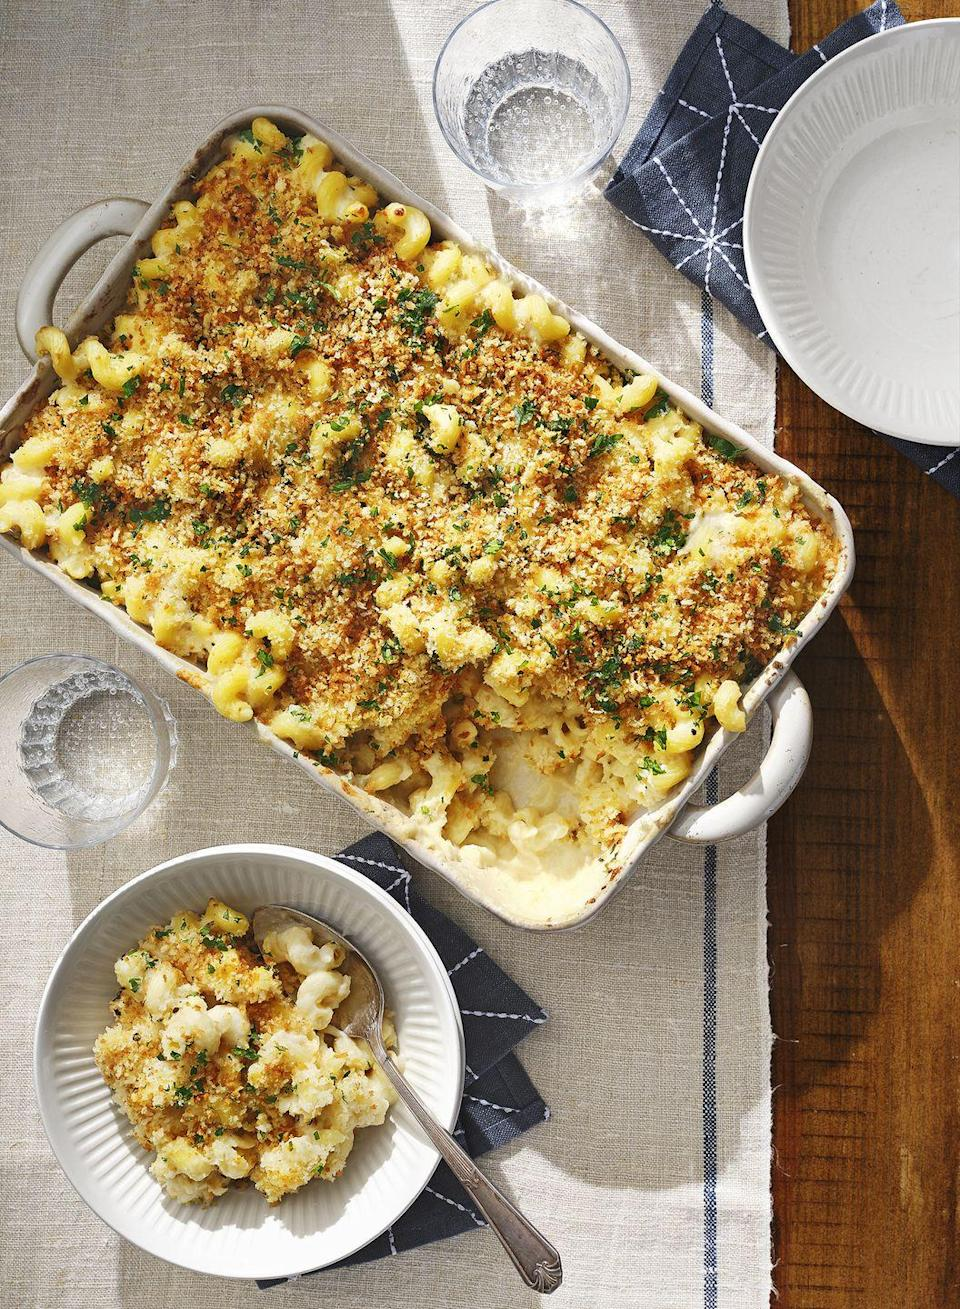 """<p>This cold-night staple serves up ample creamy gooeyness, while a stealthy vegetable (puréed cauliflower!) boosts vitamins and fiber.</p><p><strong><a href=""""https://www.countryliving.com/food-drinks/a30418292/cauliflower-mac-and-cheese-recipe/"""" rel=""""nofollow noopener"""" target=""""_blank"""" data-ylk=""""slk:Get the recipe"""" class=""""link rapid-noclick-resp"""">Get the recipe</a>.</strong></p><p><strong><a class=""""link rapid-noclick-resp"""" href=""""https://www.amazon.com/Krokori-Rectangular-Bakeware-Ceramic-Lasagna/dp/B07RQFVQ6Q/?tag=syn-yahoo-20&ascsubtag=%5Bartid%7C10050.g.32998491%5Bsrc%7Cyahoo-us"""" rel=""""nofollow noopener"""" target=""""_blank"""" data-ylk=""""slk:SHOP BAKING DISHES"""">SHOP BAKING DISHES</a><br></strong></p>"""